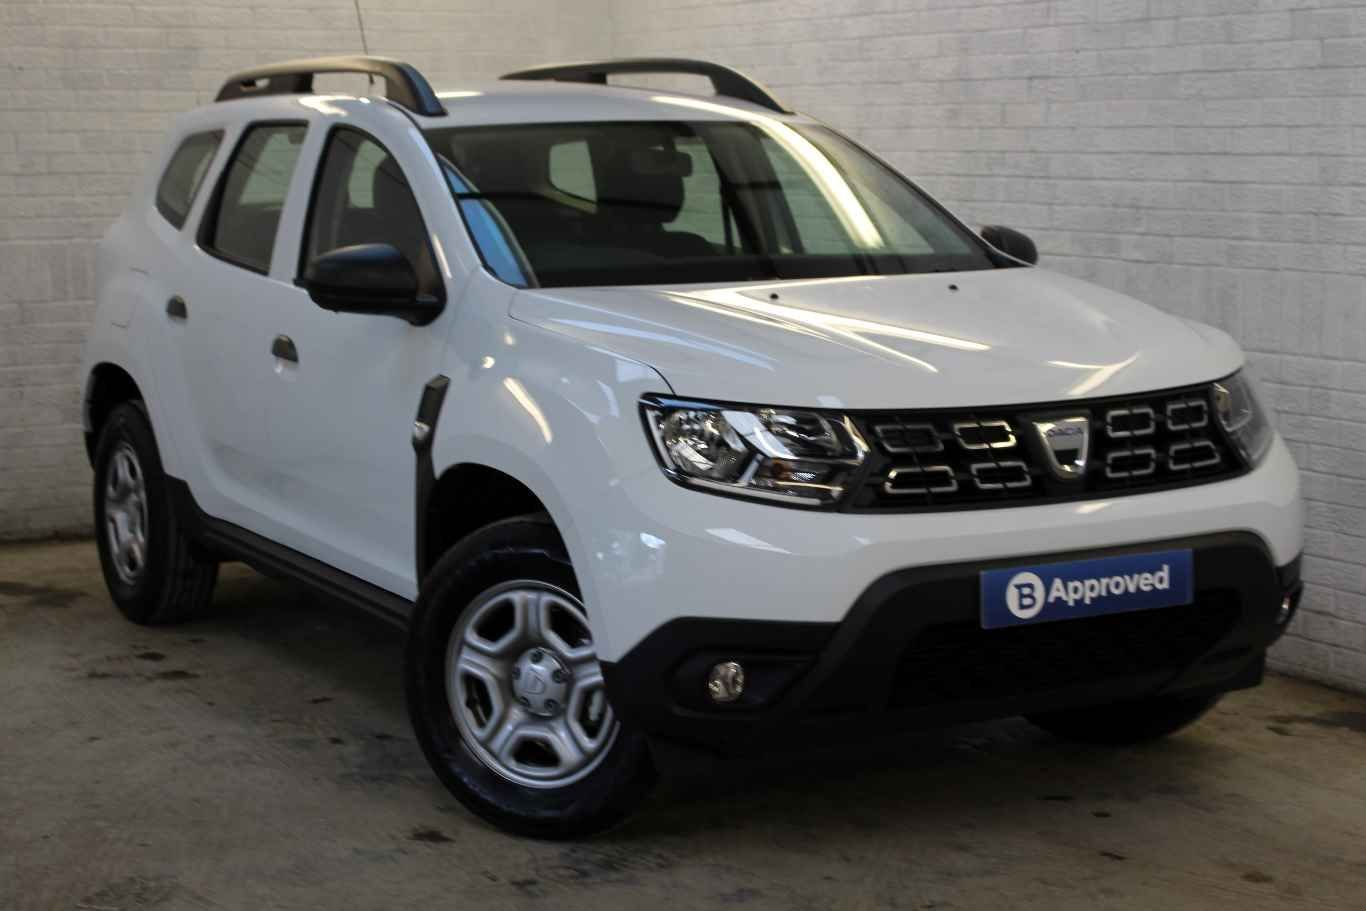 Dacia Duster 5dr 1.0 Tce 100 Essential 4x2